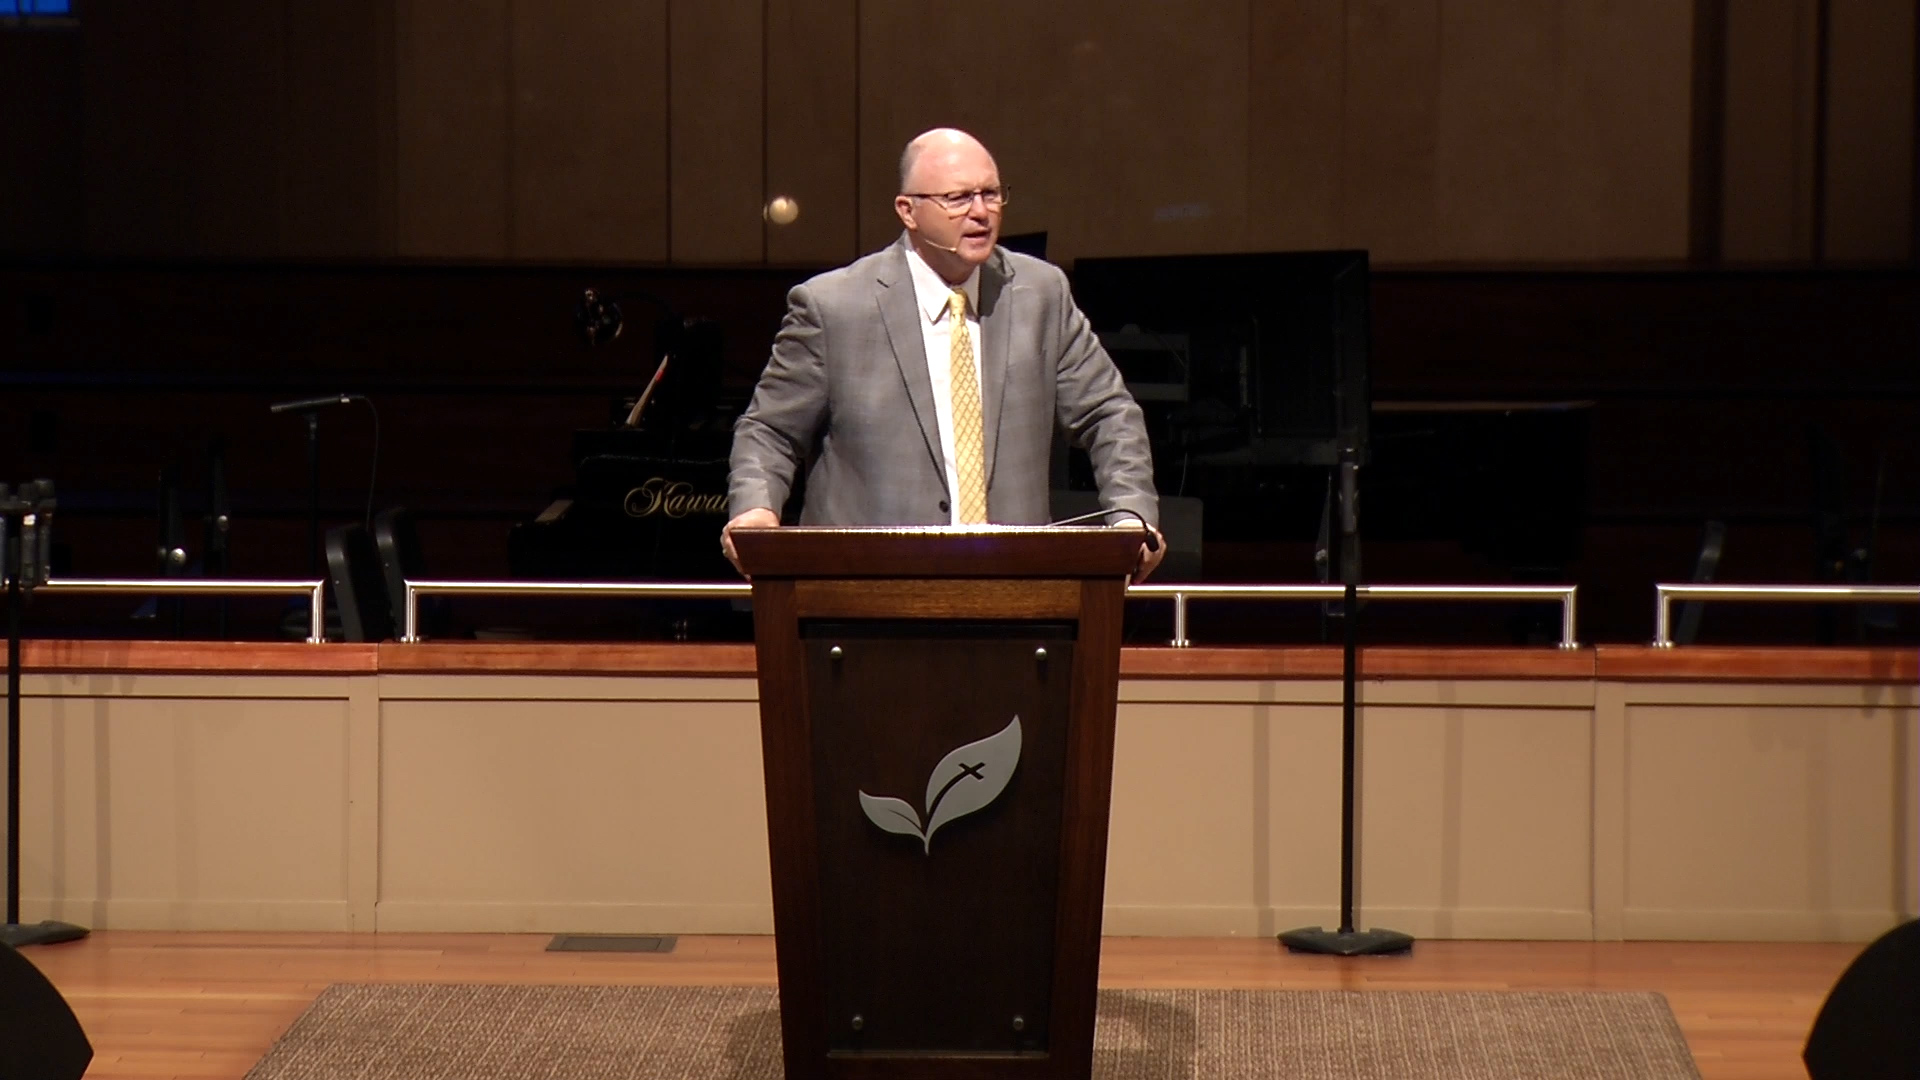 Pastor Paul Chappell: Living Always with a Thankful Heart